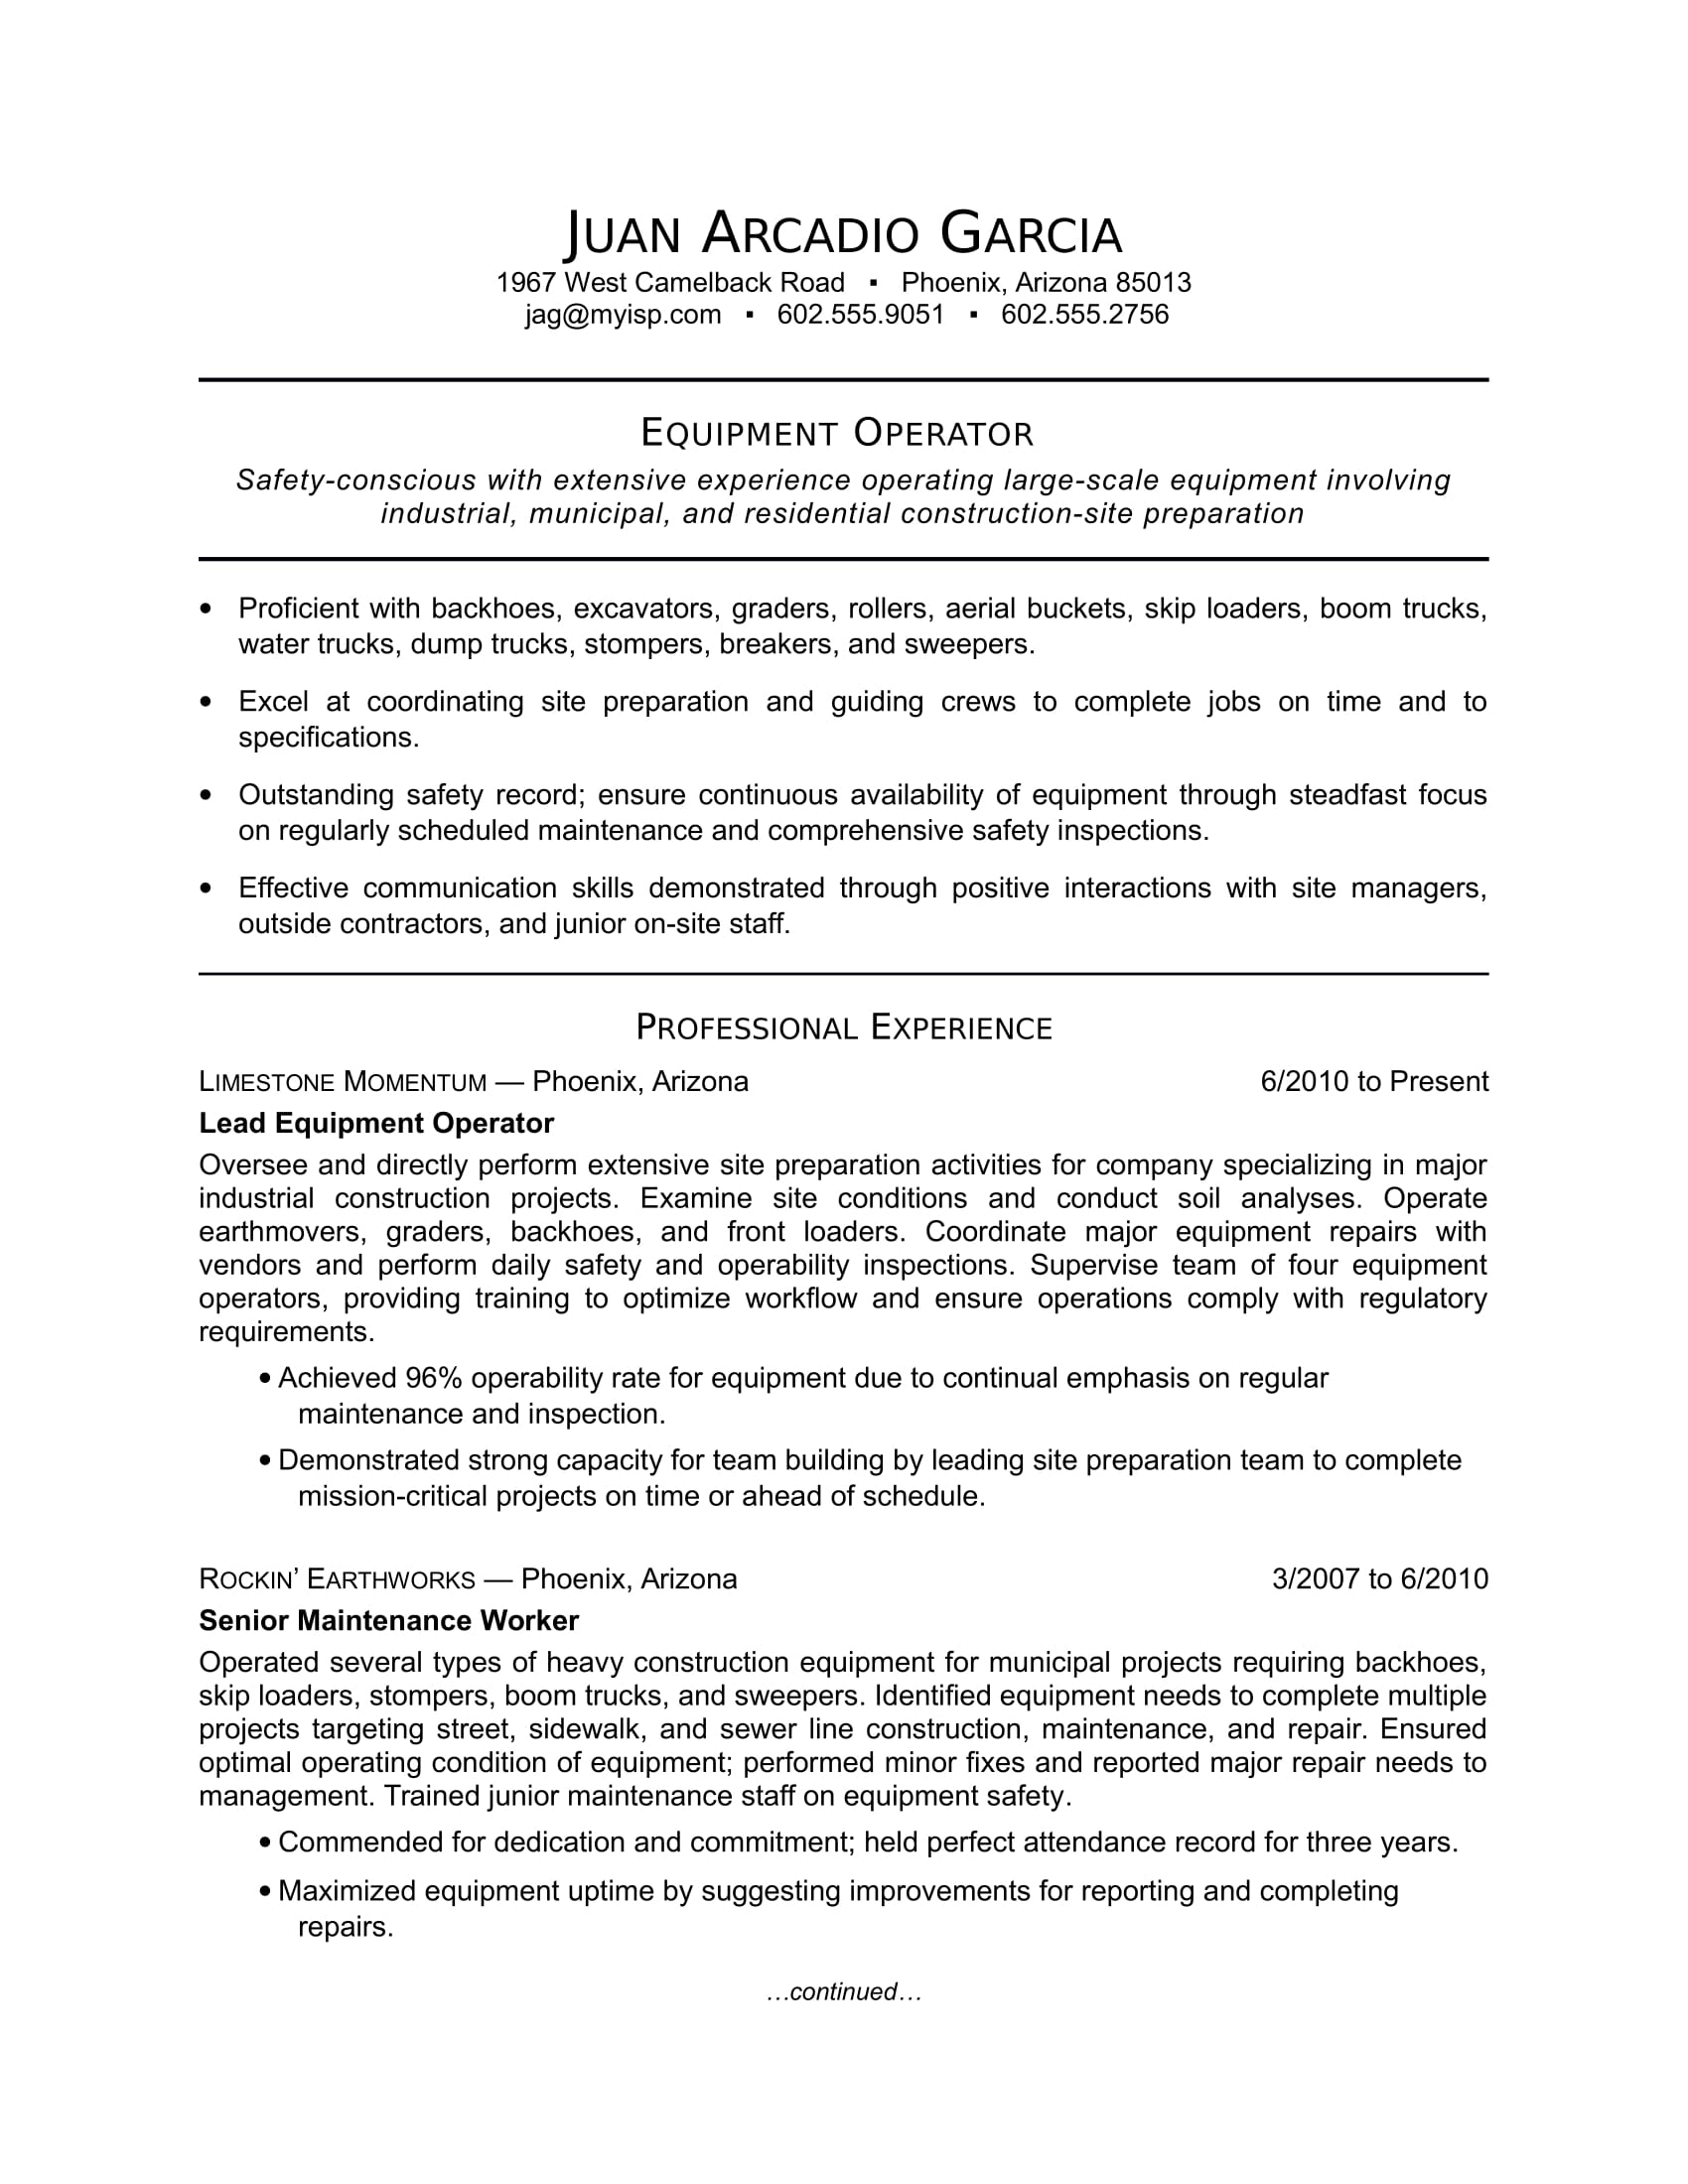 Equipment operator resume sample monster sample resume for an equipment operator altavistaventures Choice Image